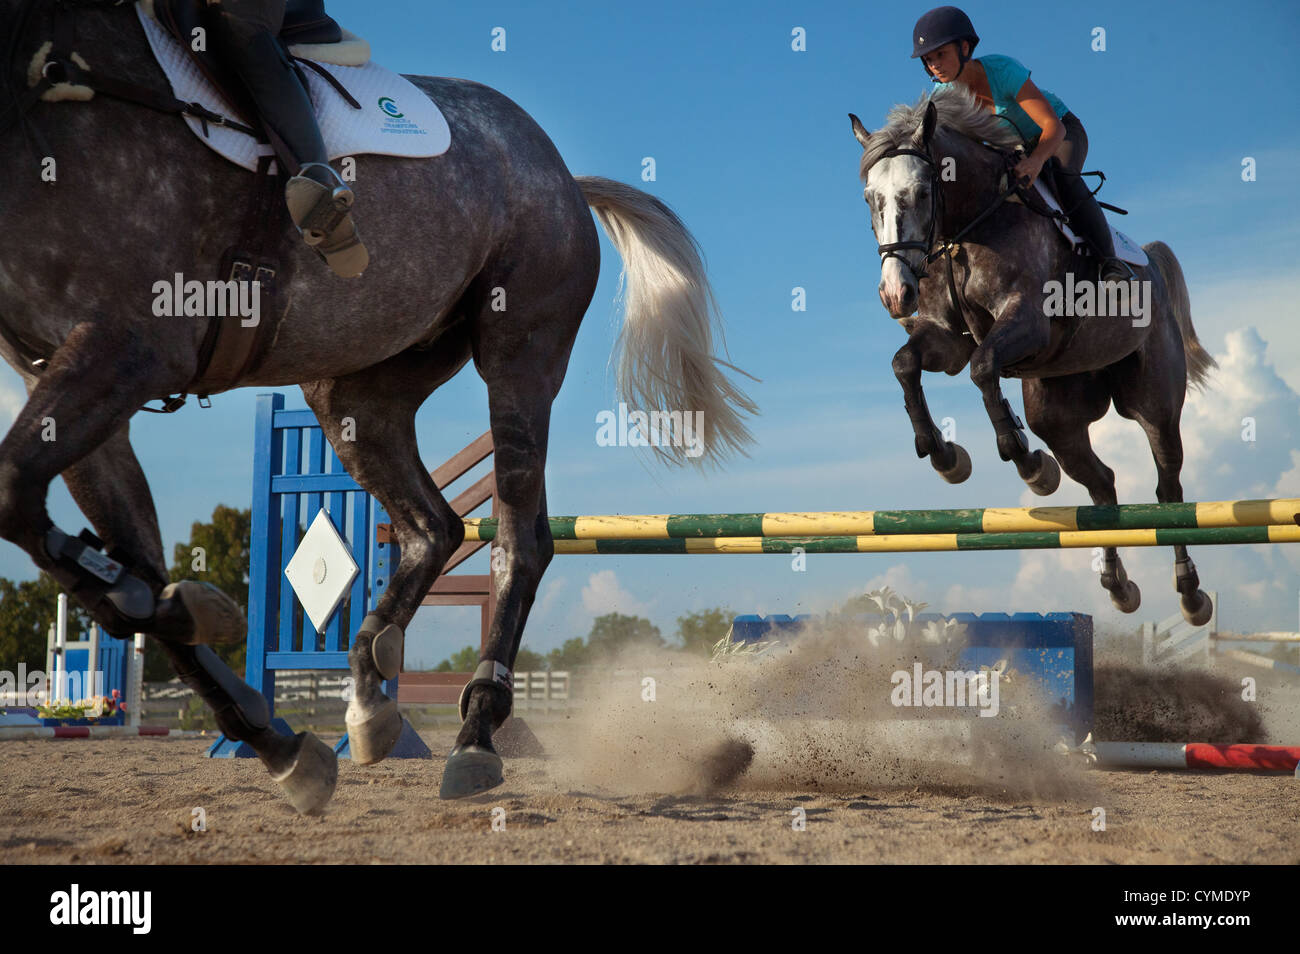 A rider gets airborne while practicing for an equestrian event. - Stock Image